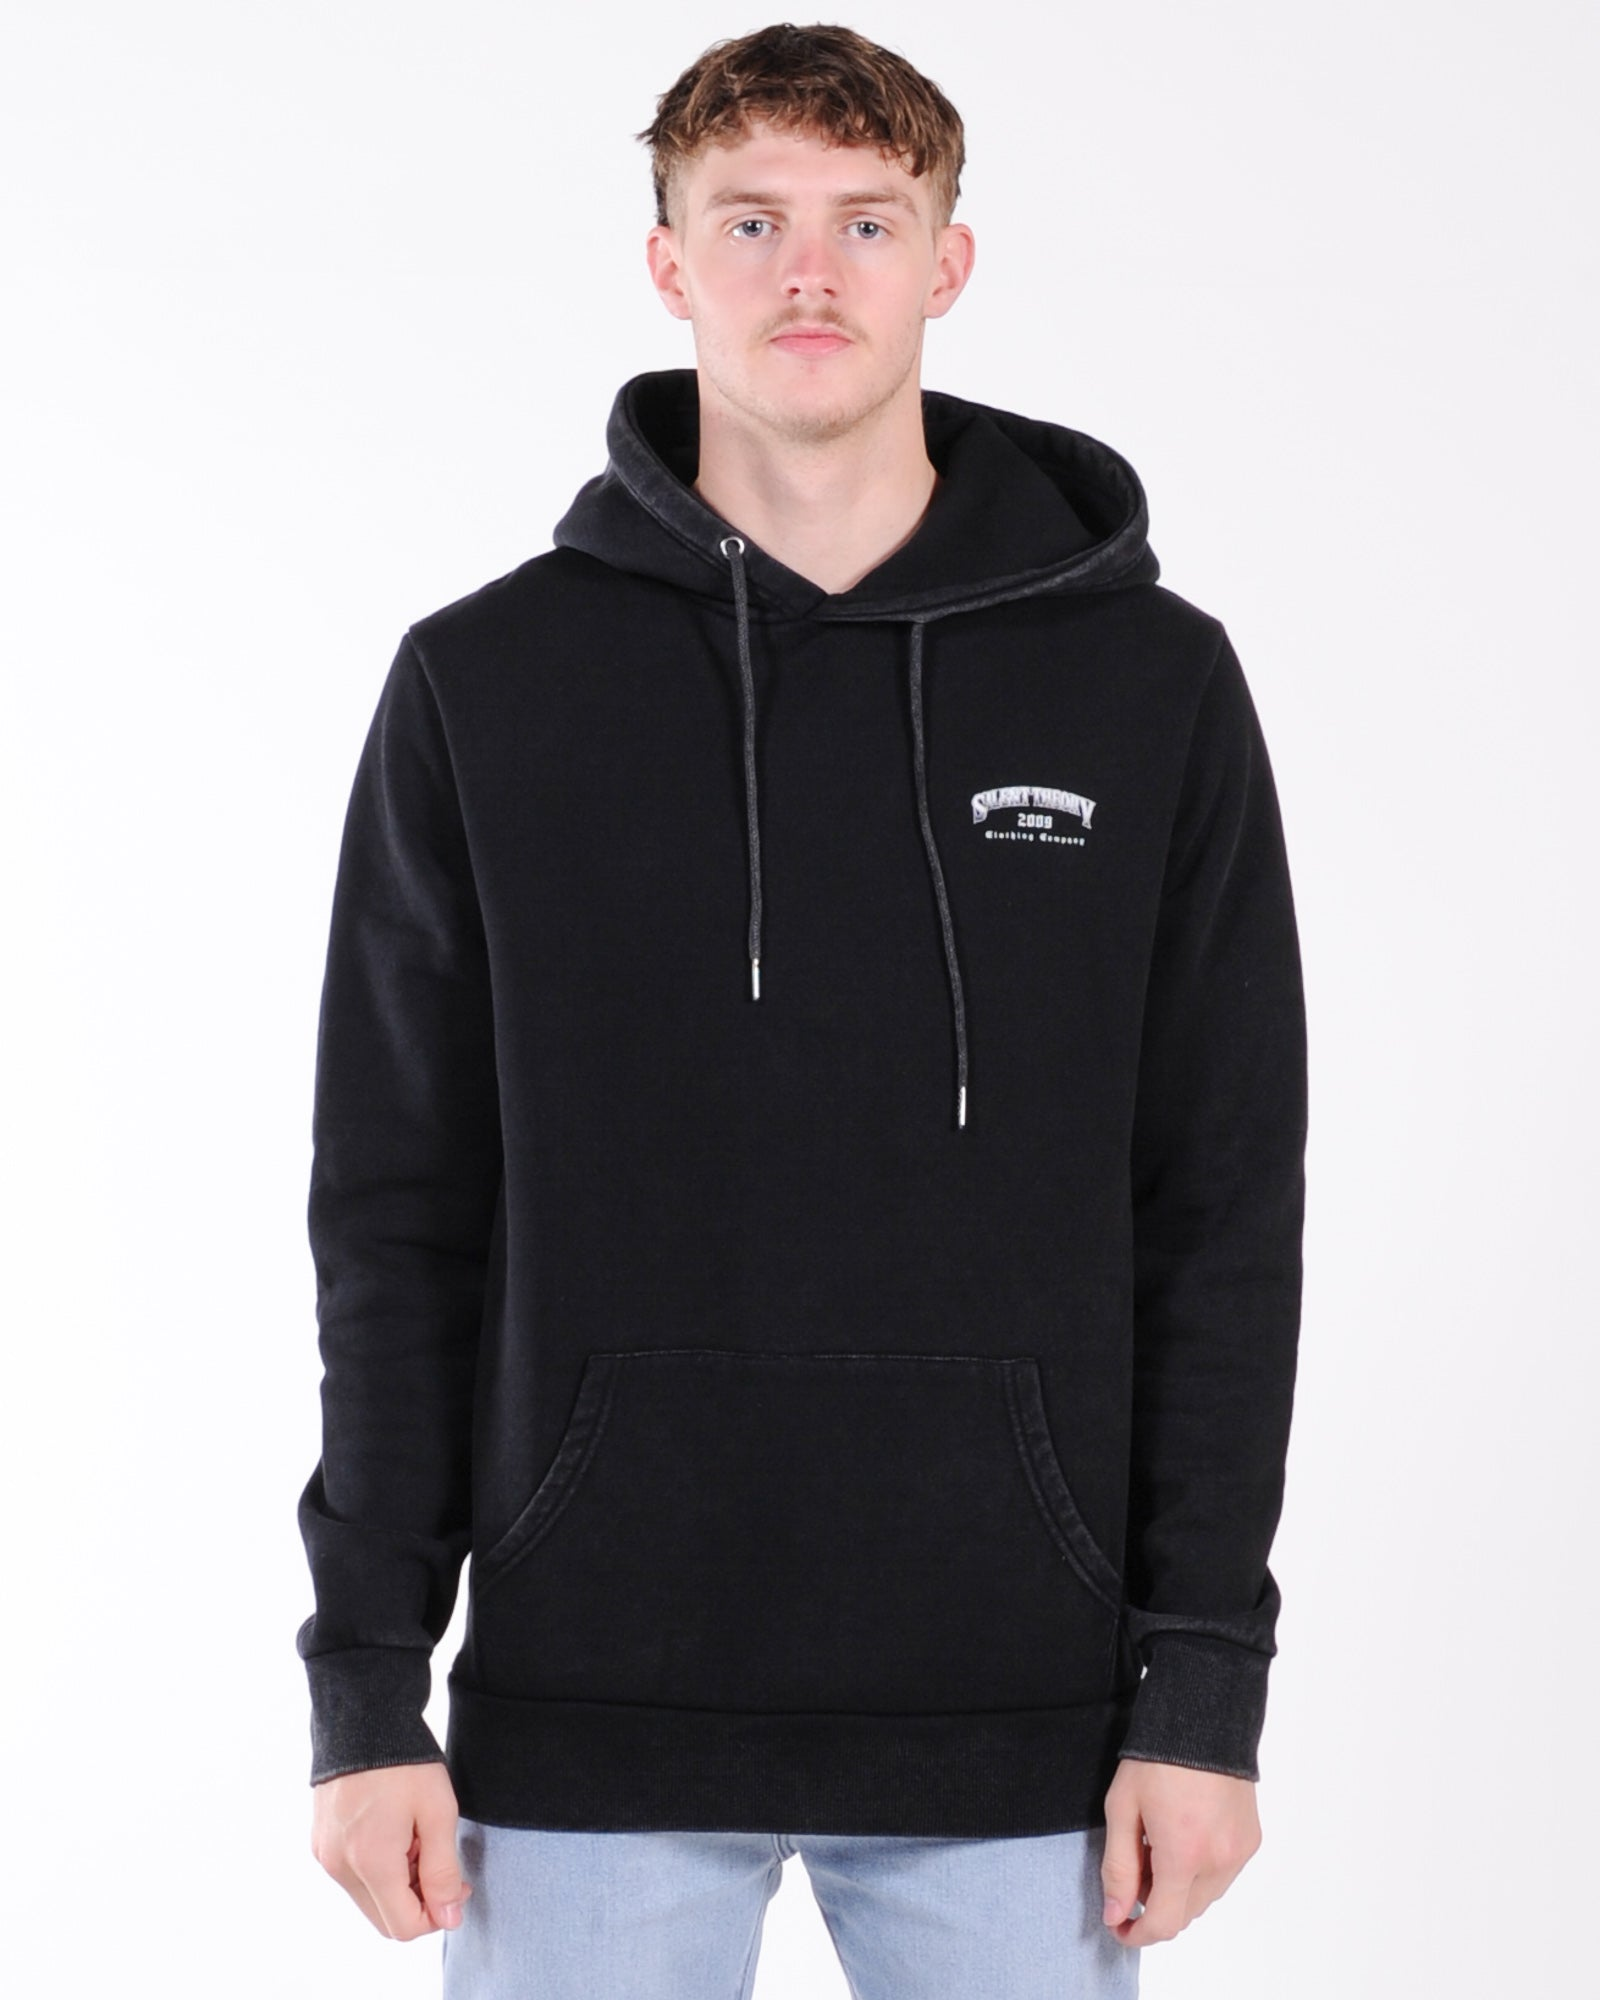 Silent Theory American Eagle Hood Sweat - Washed Black